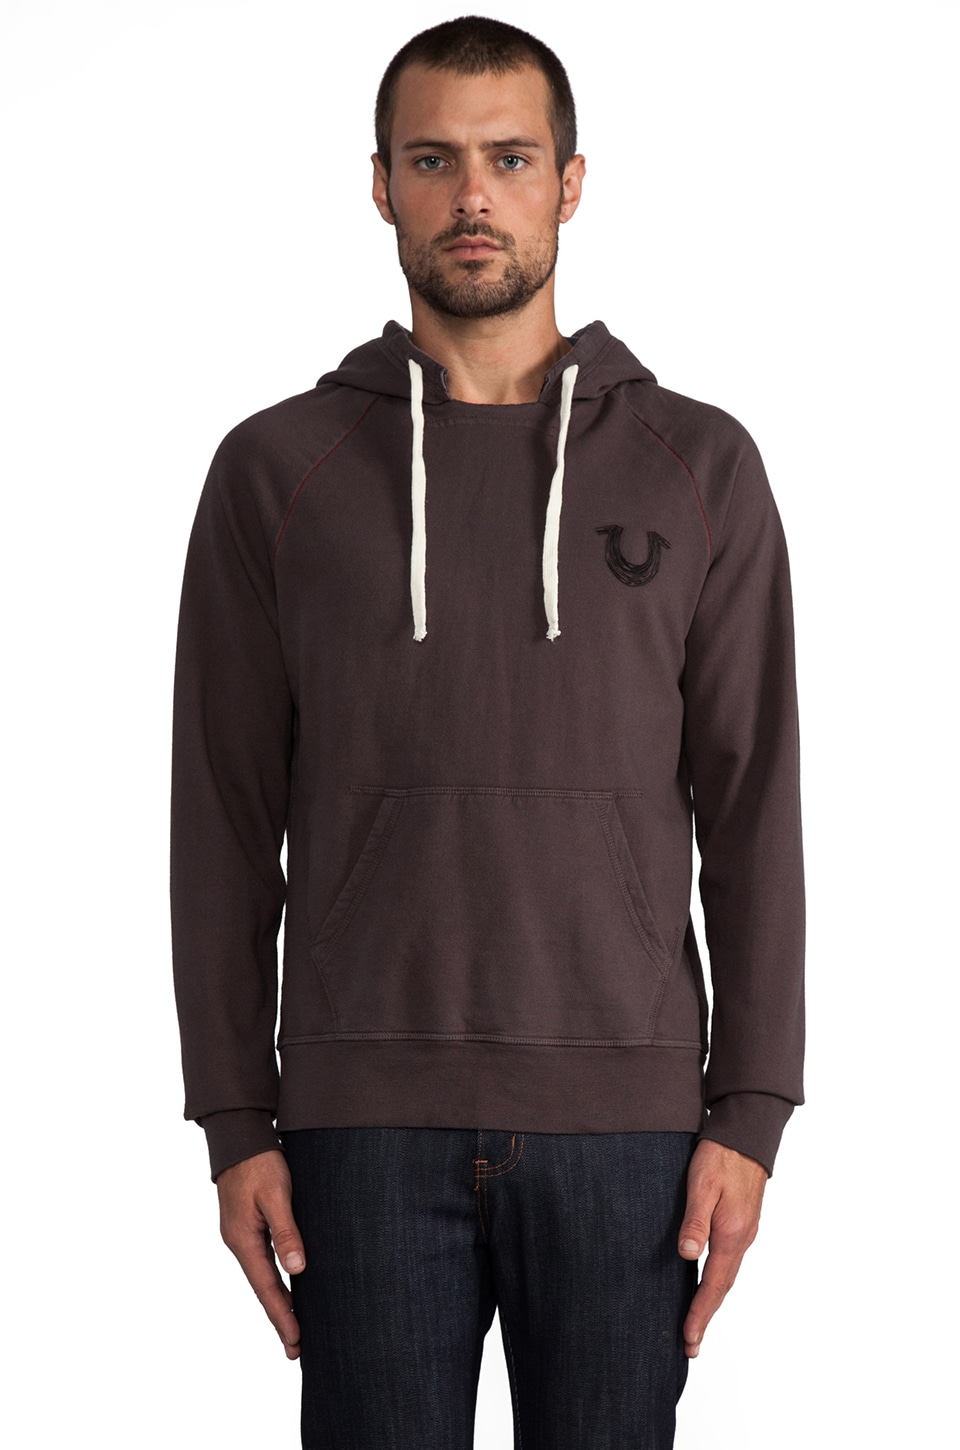 True Religion Branded Hoodie in Charcoal